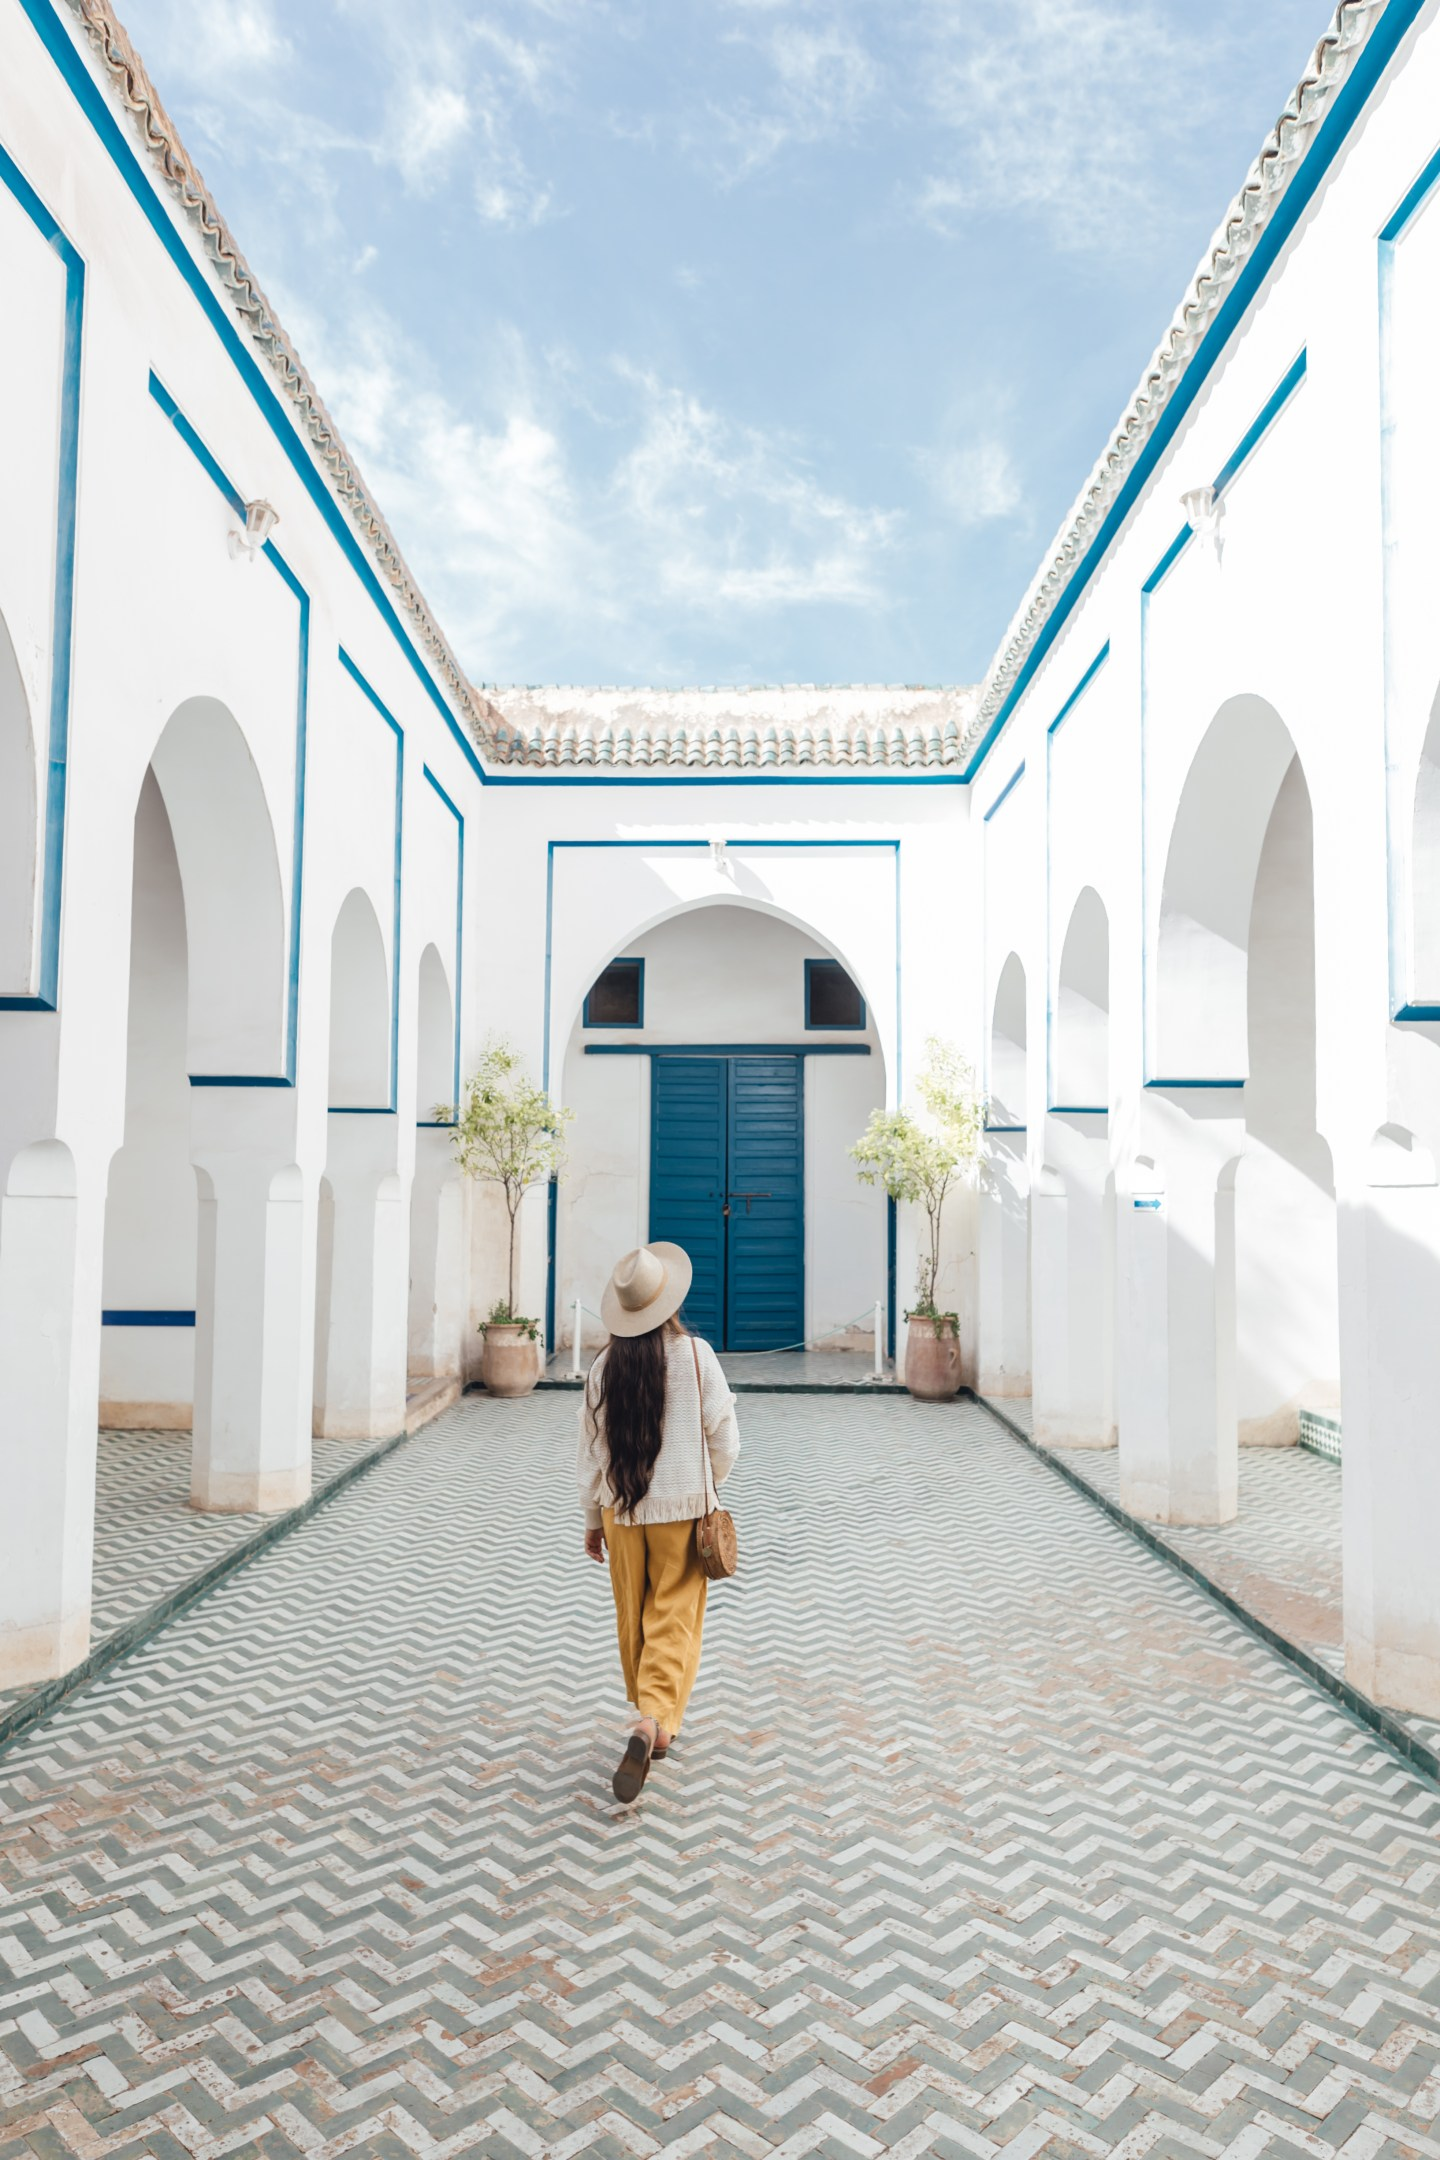 Exploring La Bahia Palace, Marrakech